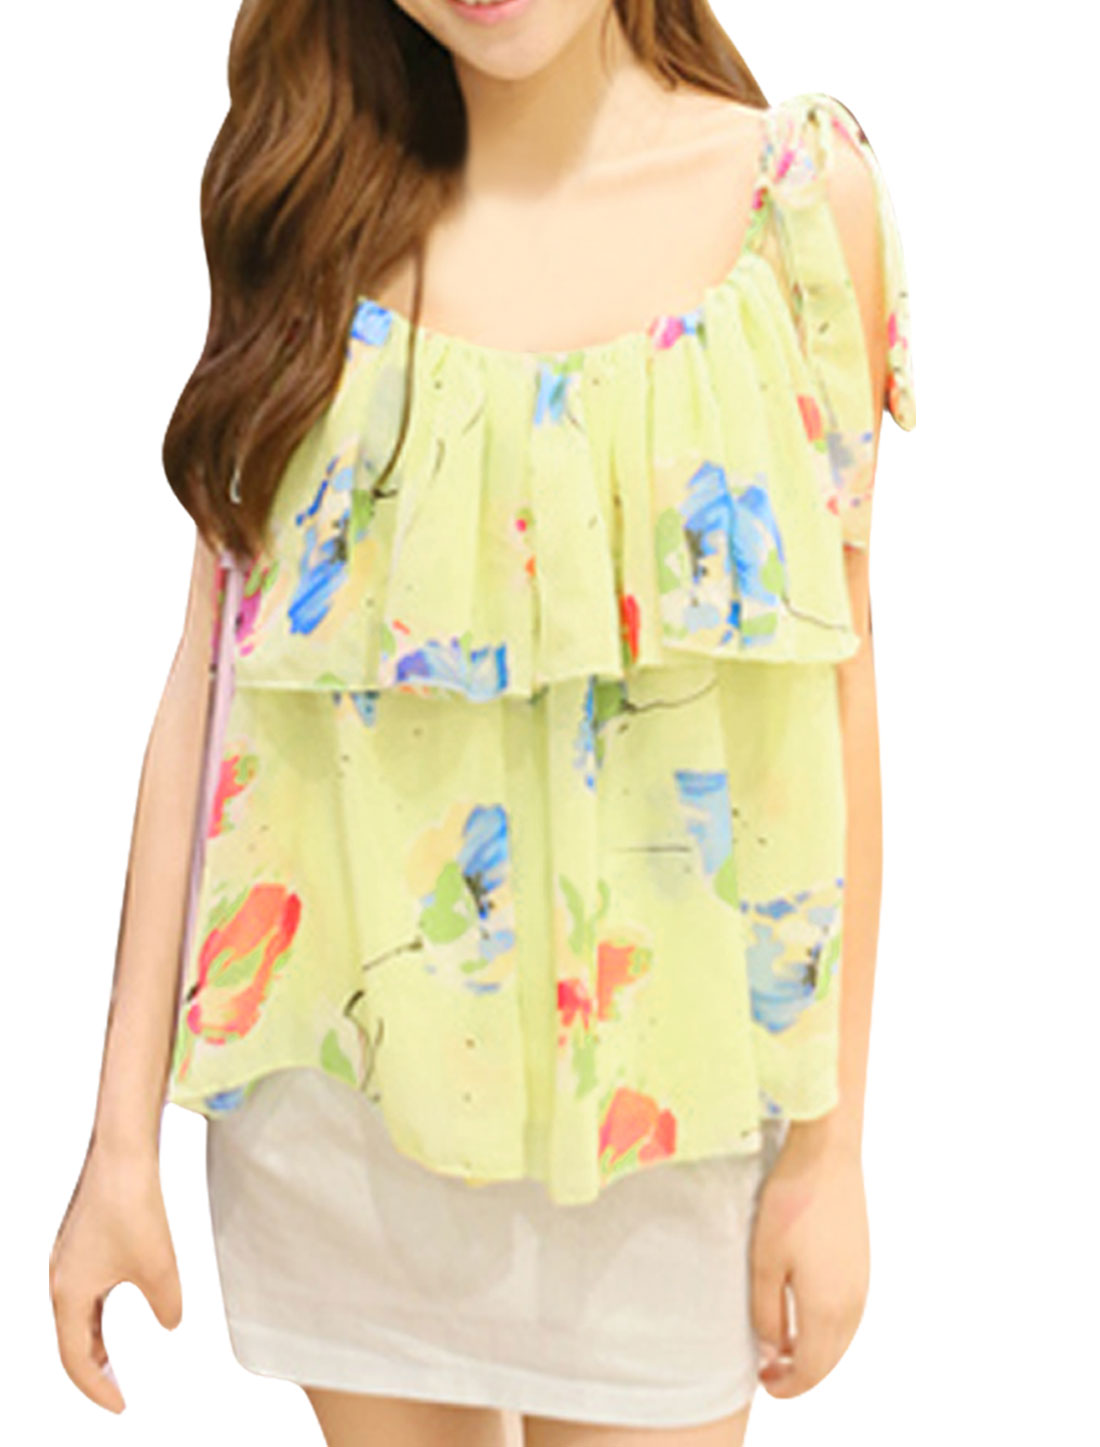 Women Spaghetti Strap Floral Pattern Off Shoulder Colorful Blouse Yellow L